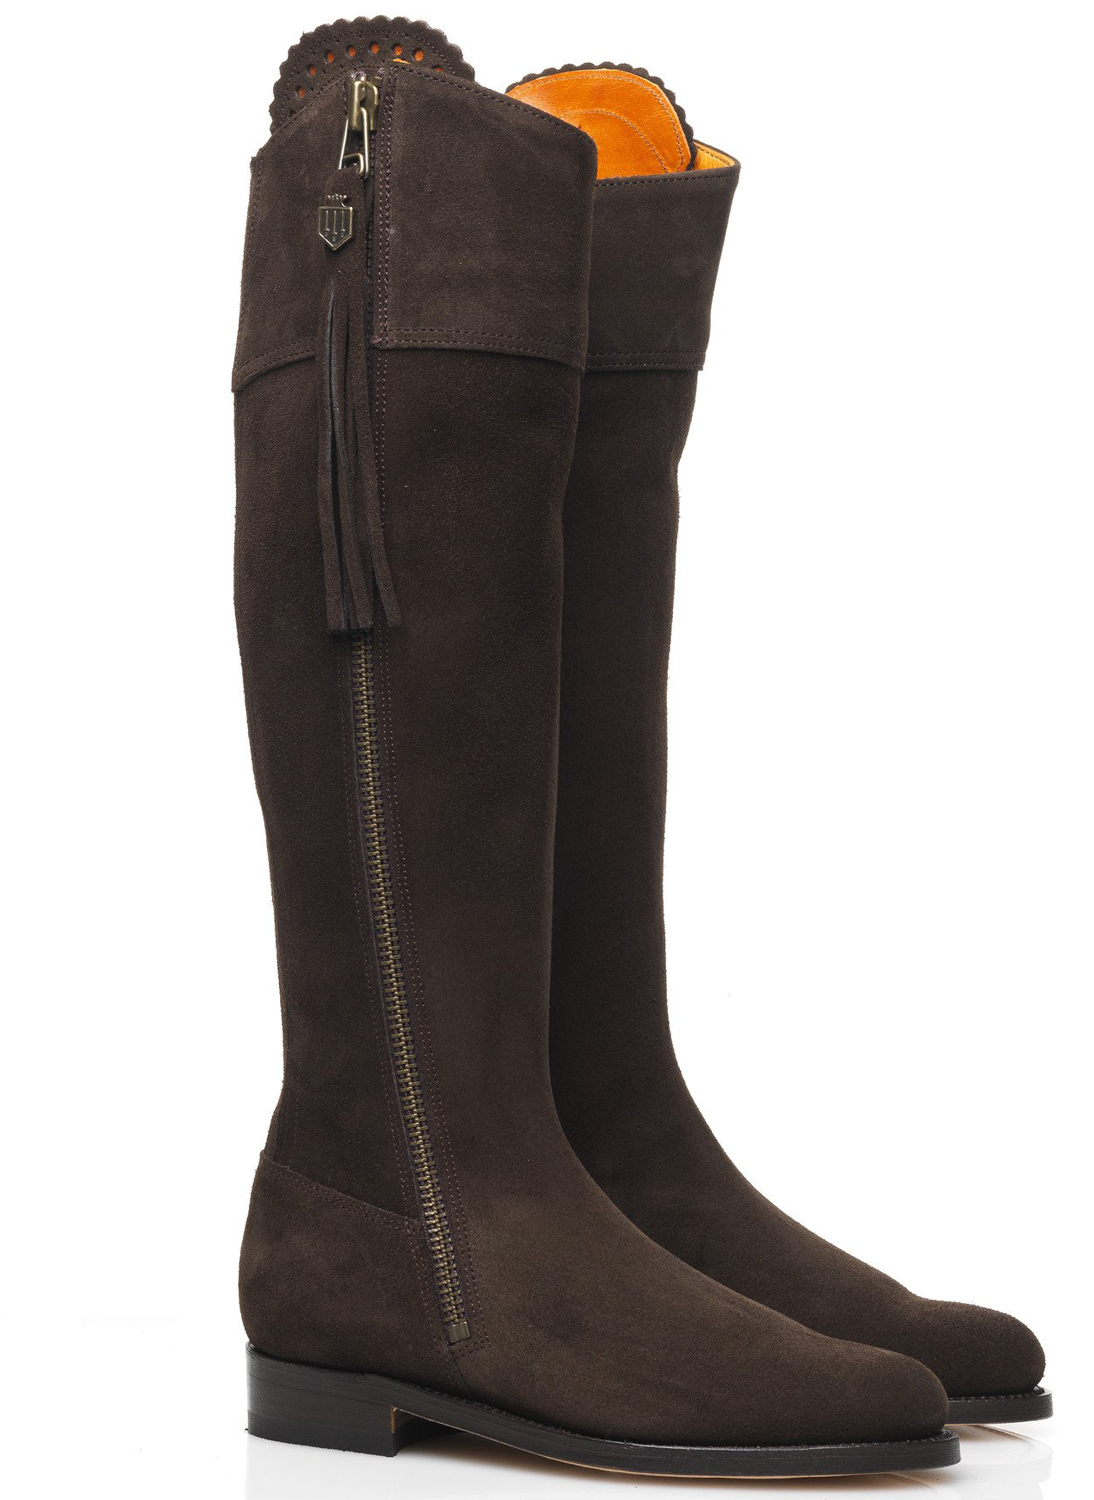 fairfax and favor flat chocolate suede boots